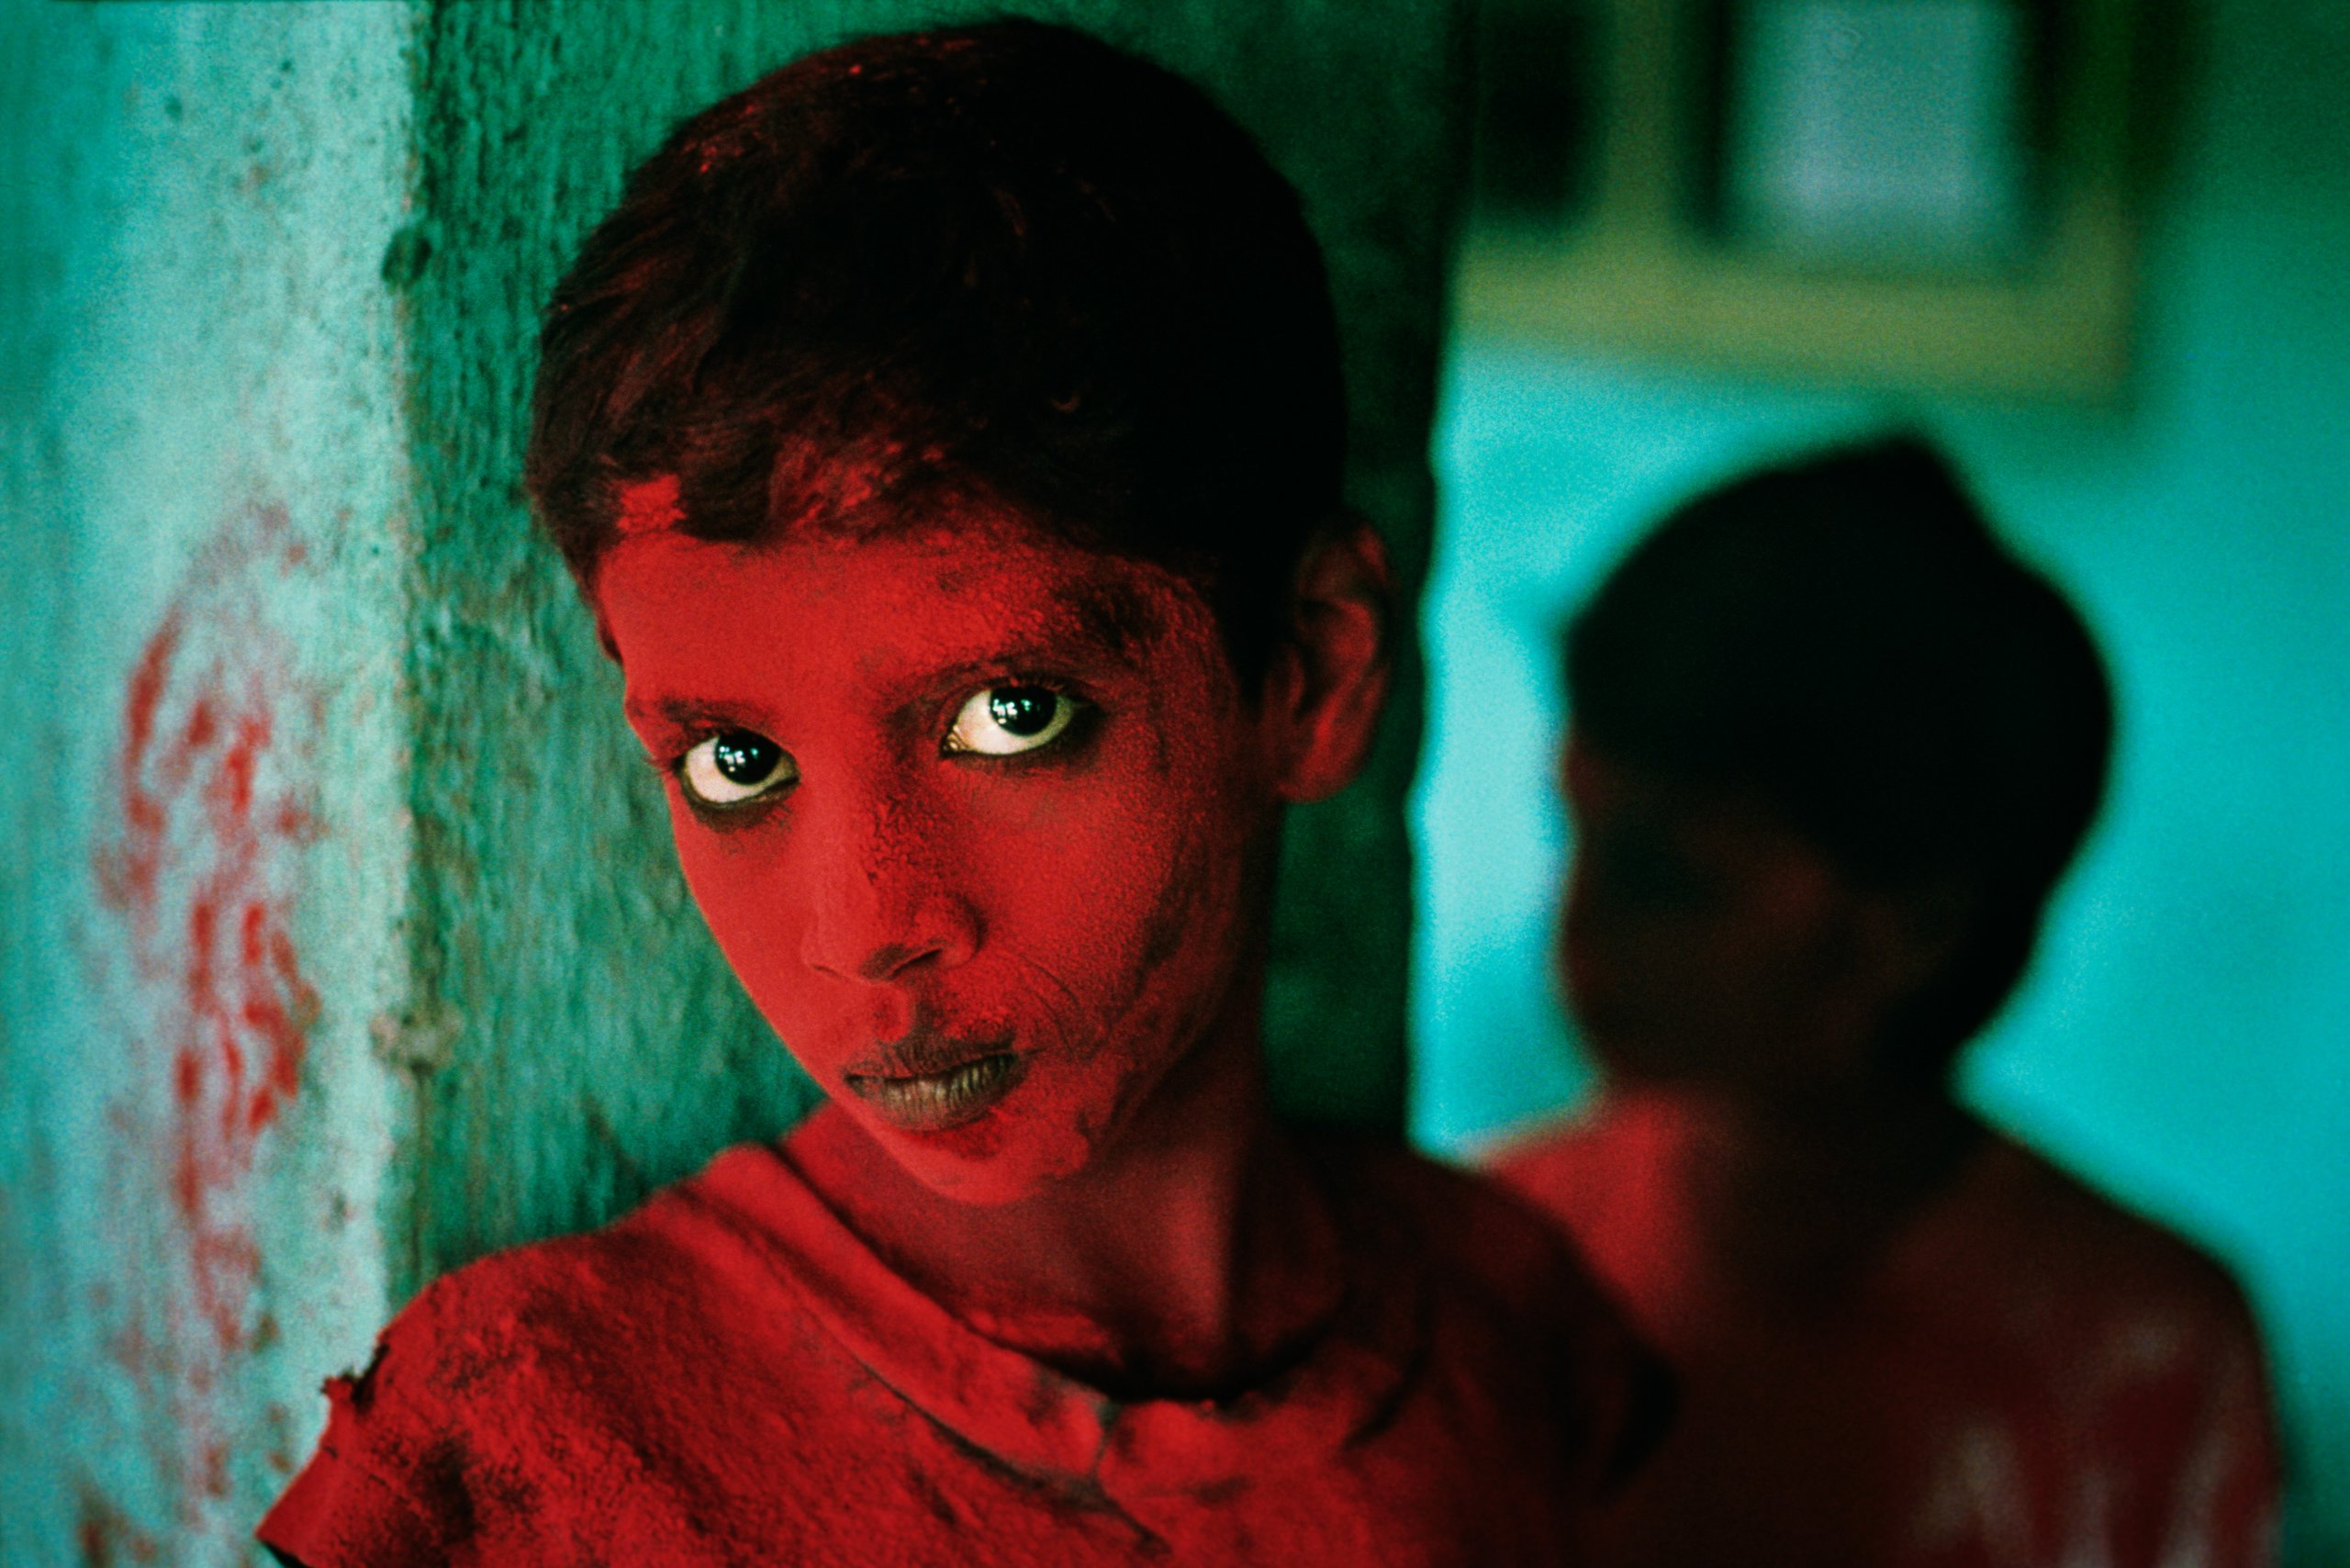 Steve McCurry The Iconic Photographs 8601300390451 Amazon Books